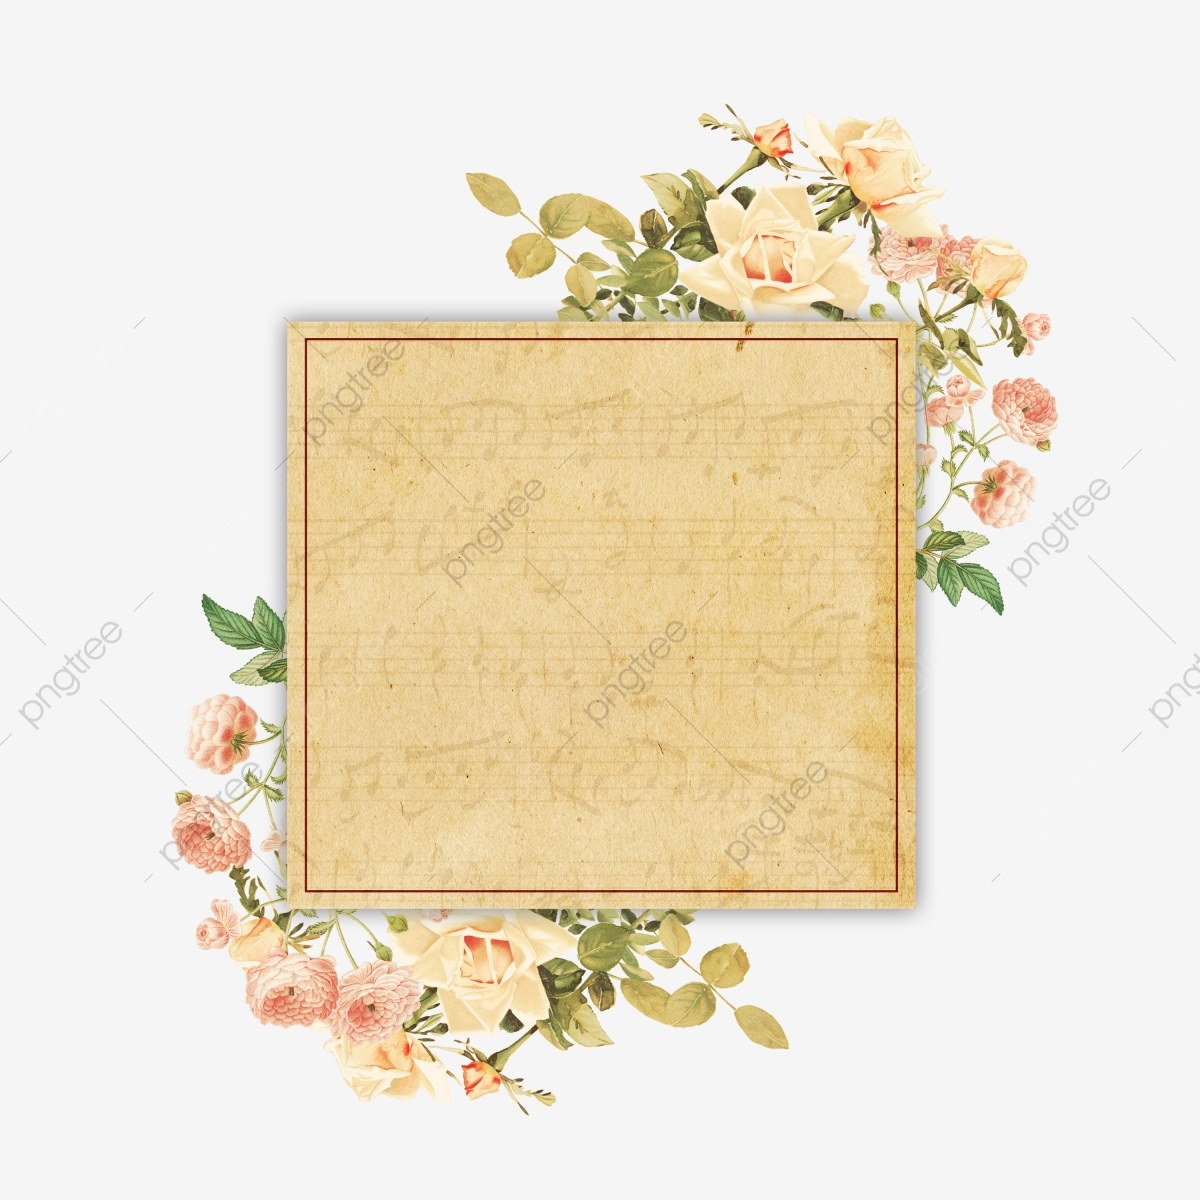 floral frame png vector psd and clipart with transparent background for free download pngtree https pngtree com freepng elegant vintage floral frame 3740897 html